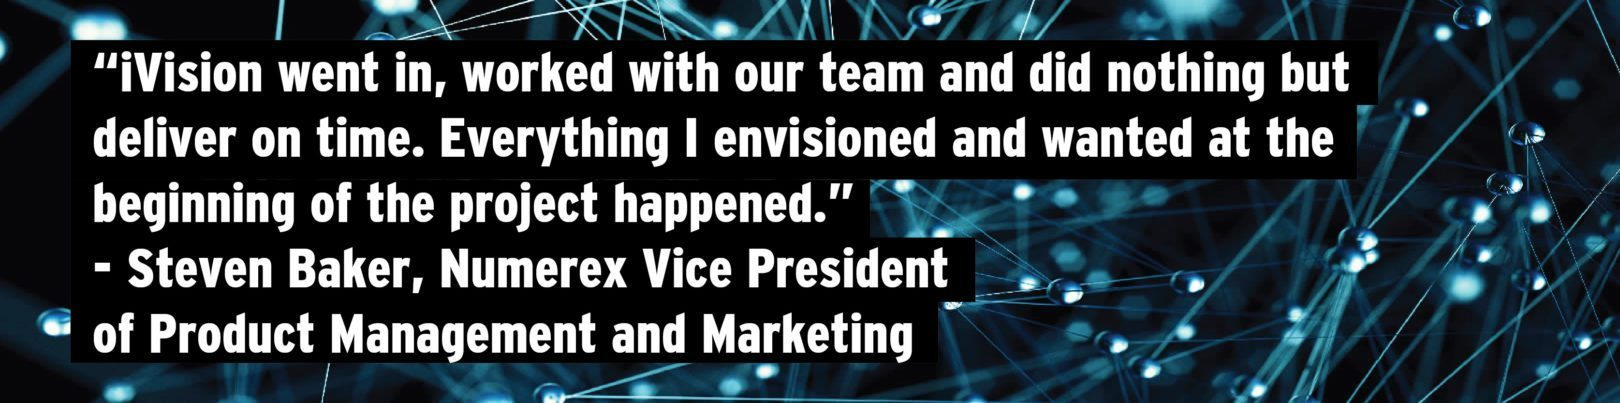 Numerex Corp. Engages iVision to Gain Visibility into IoT: Numerex Client Testimonial